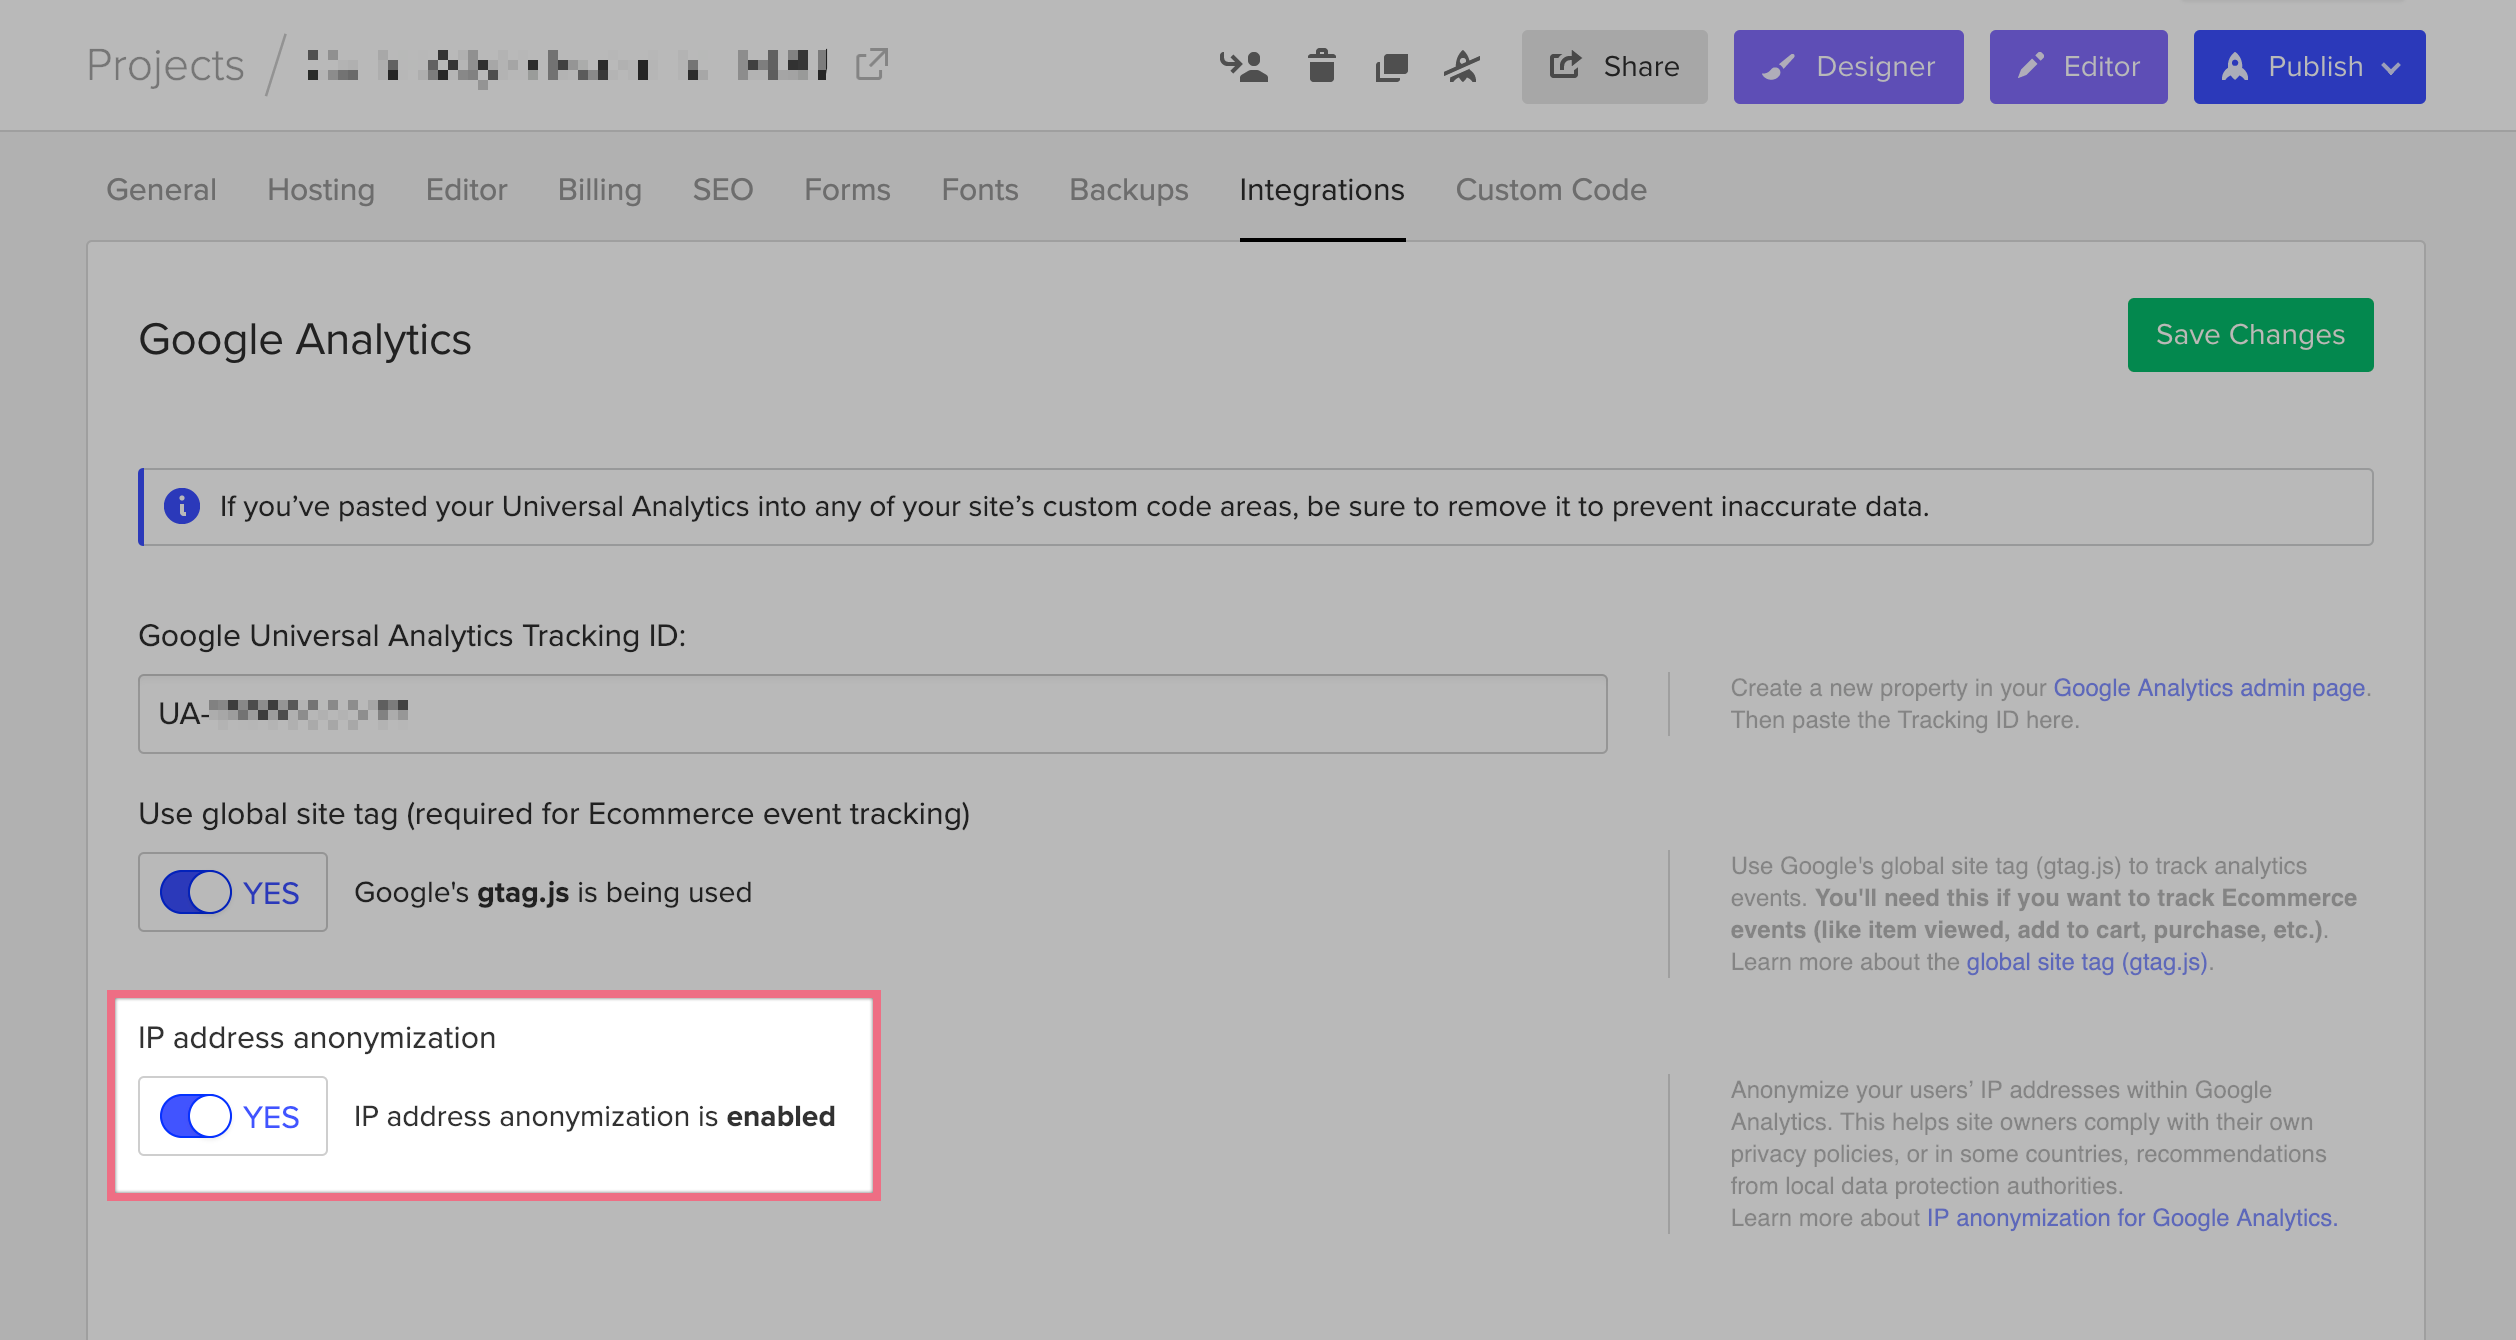 Enable IP anonymization in Google Analytics through Webflow to meet requirements by data protection authorities